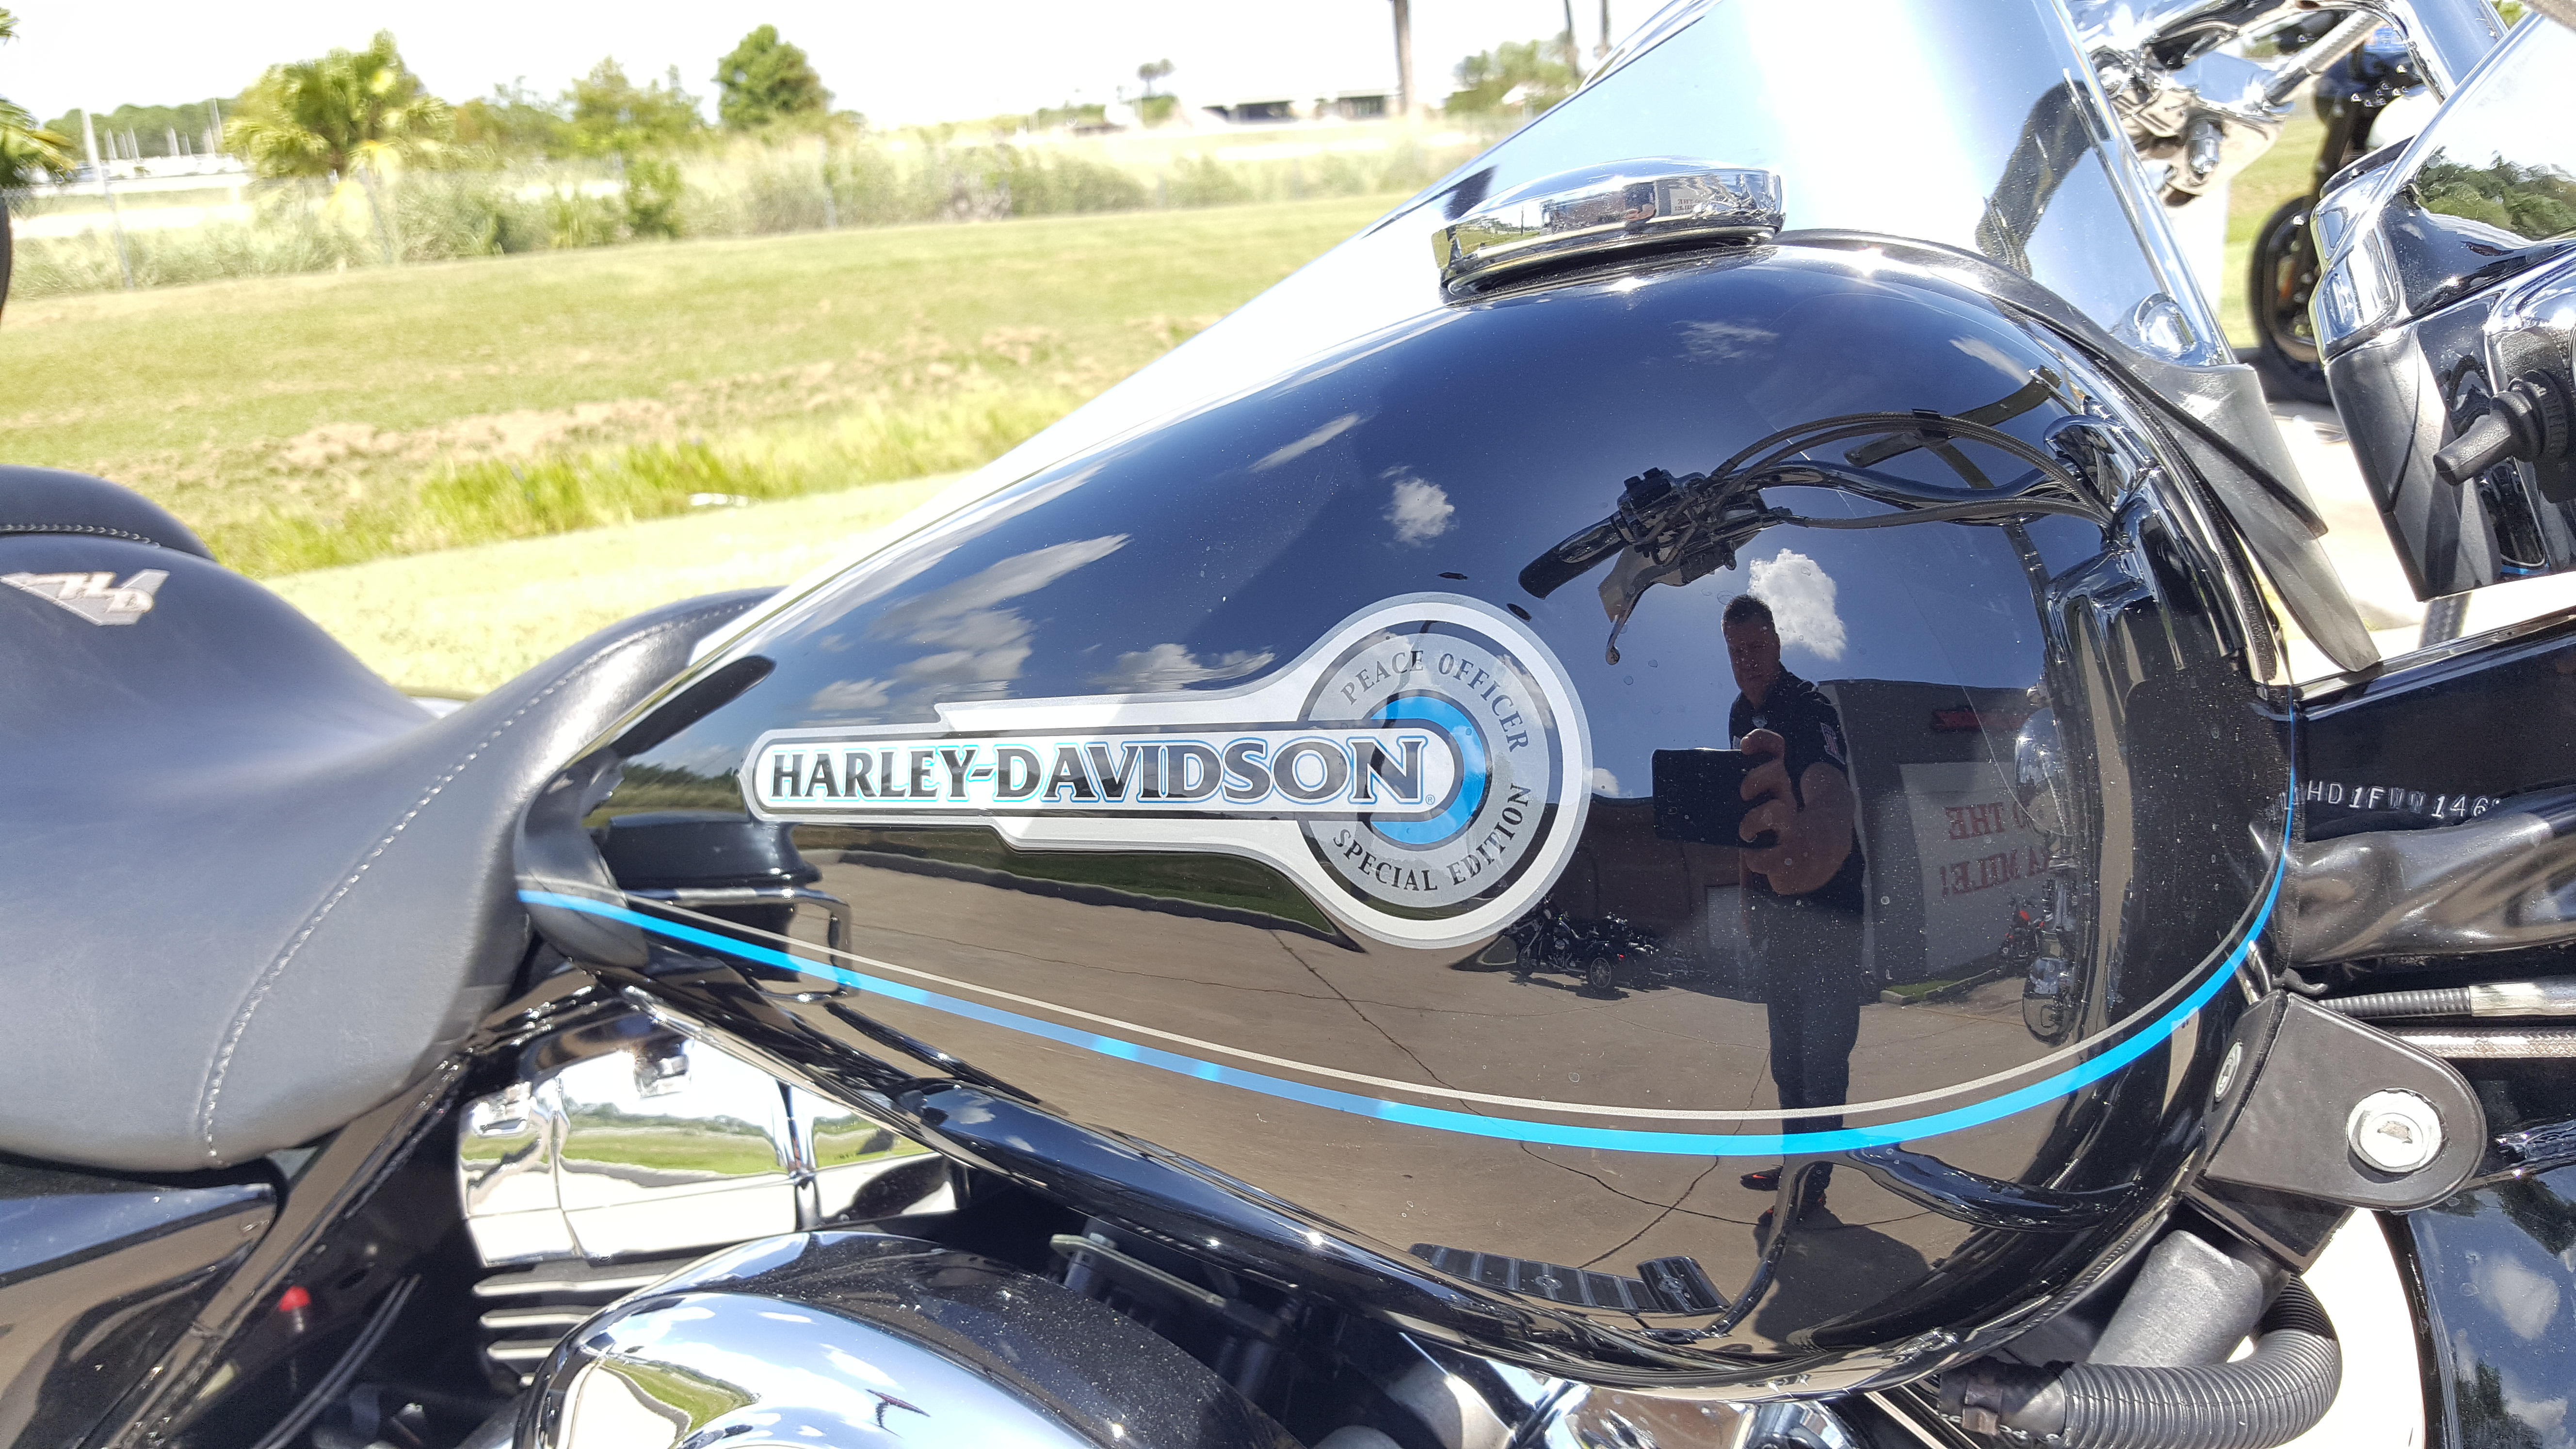 Pre-Owned 2006 Harley-Davidson Road King